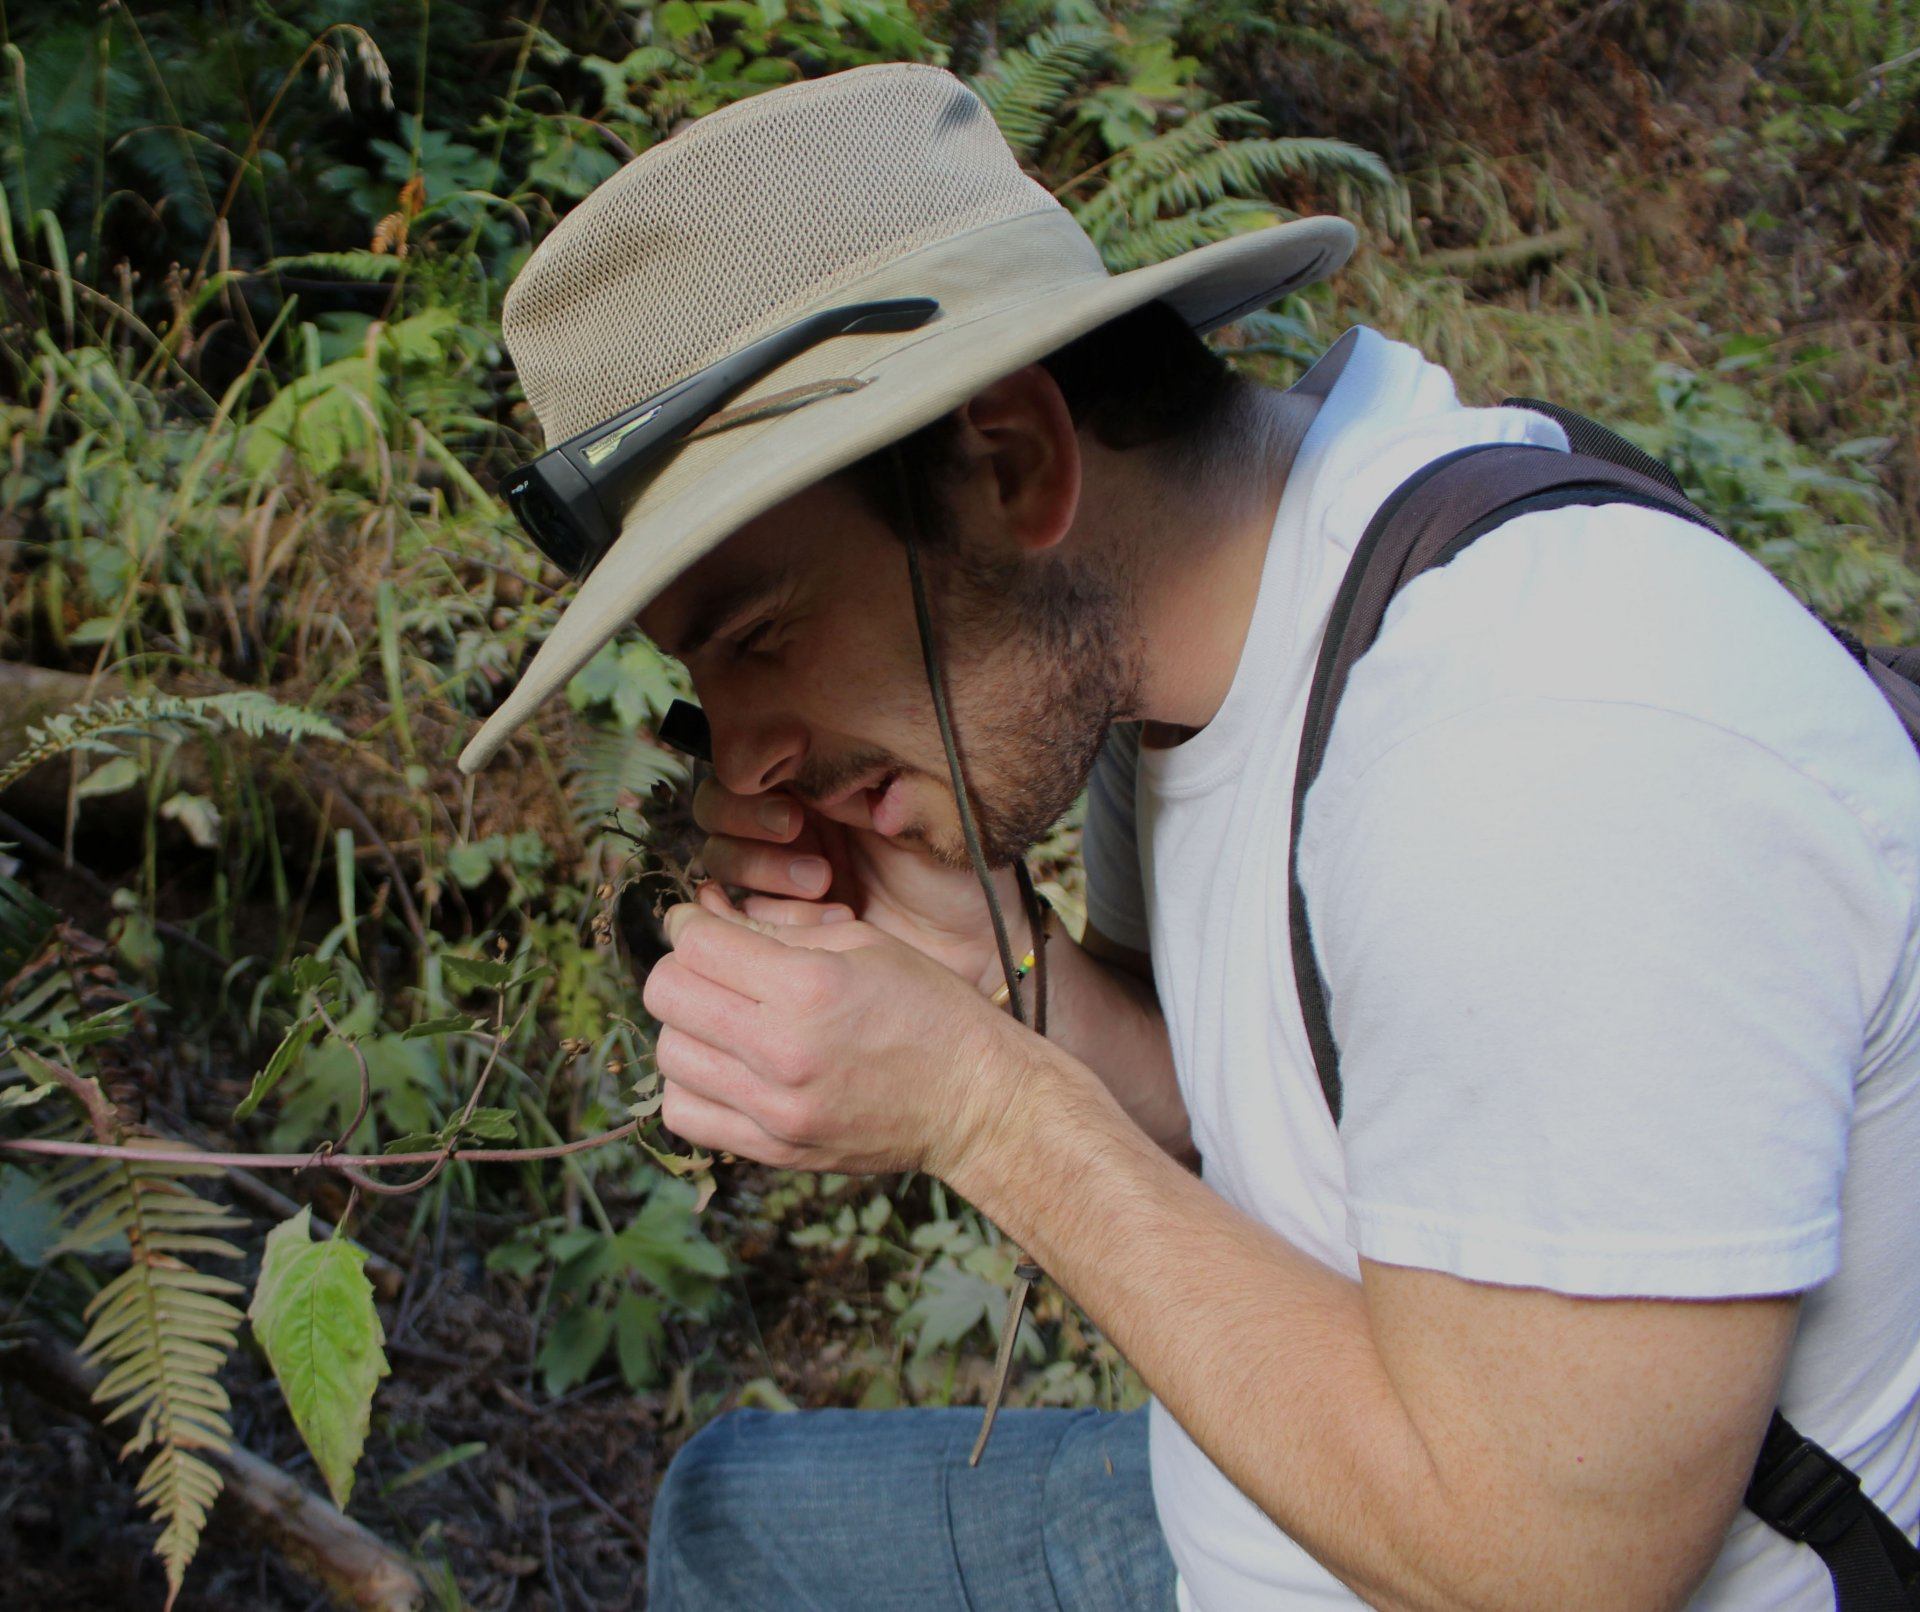 Matthew Pedrotti uses a hand lens to look at the orientation of flowers to determine the species in the Arcata Community Forest. | Photo by Walter Hackett